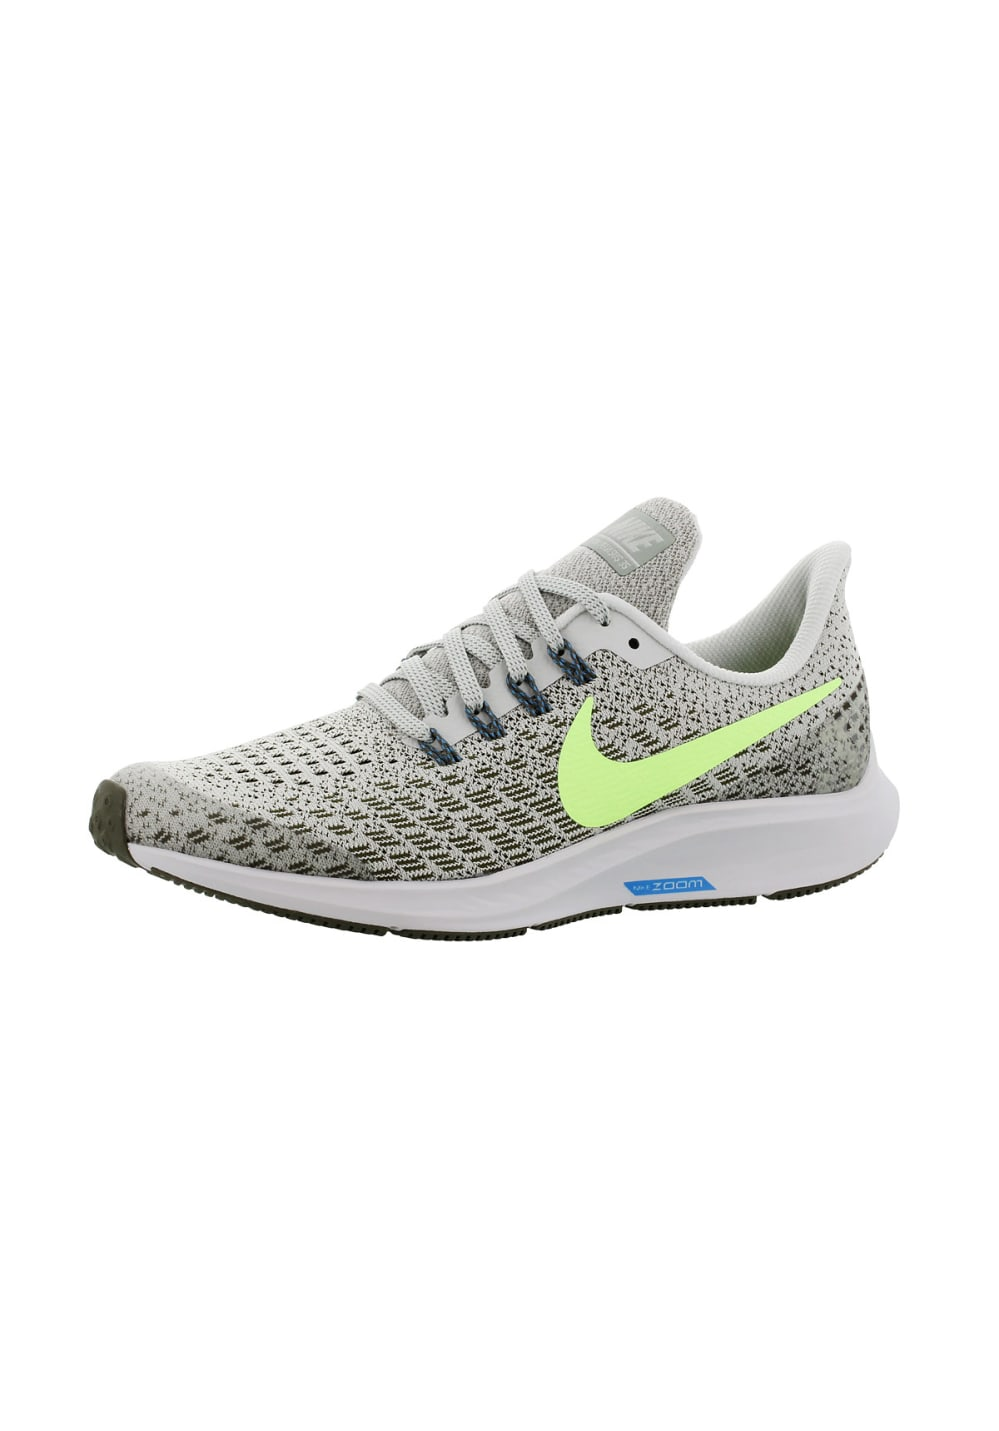 5452fd2cd815d Next. -60%. This product is currently out of stock. Nike. Air Zoom Pegasus  35 ...